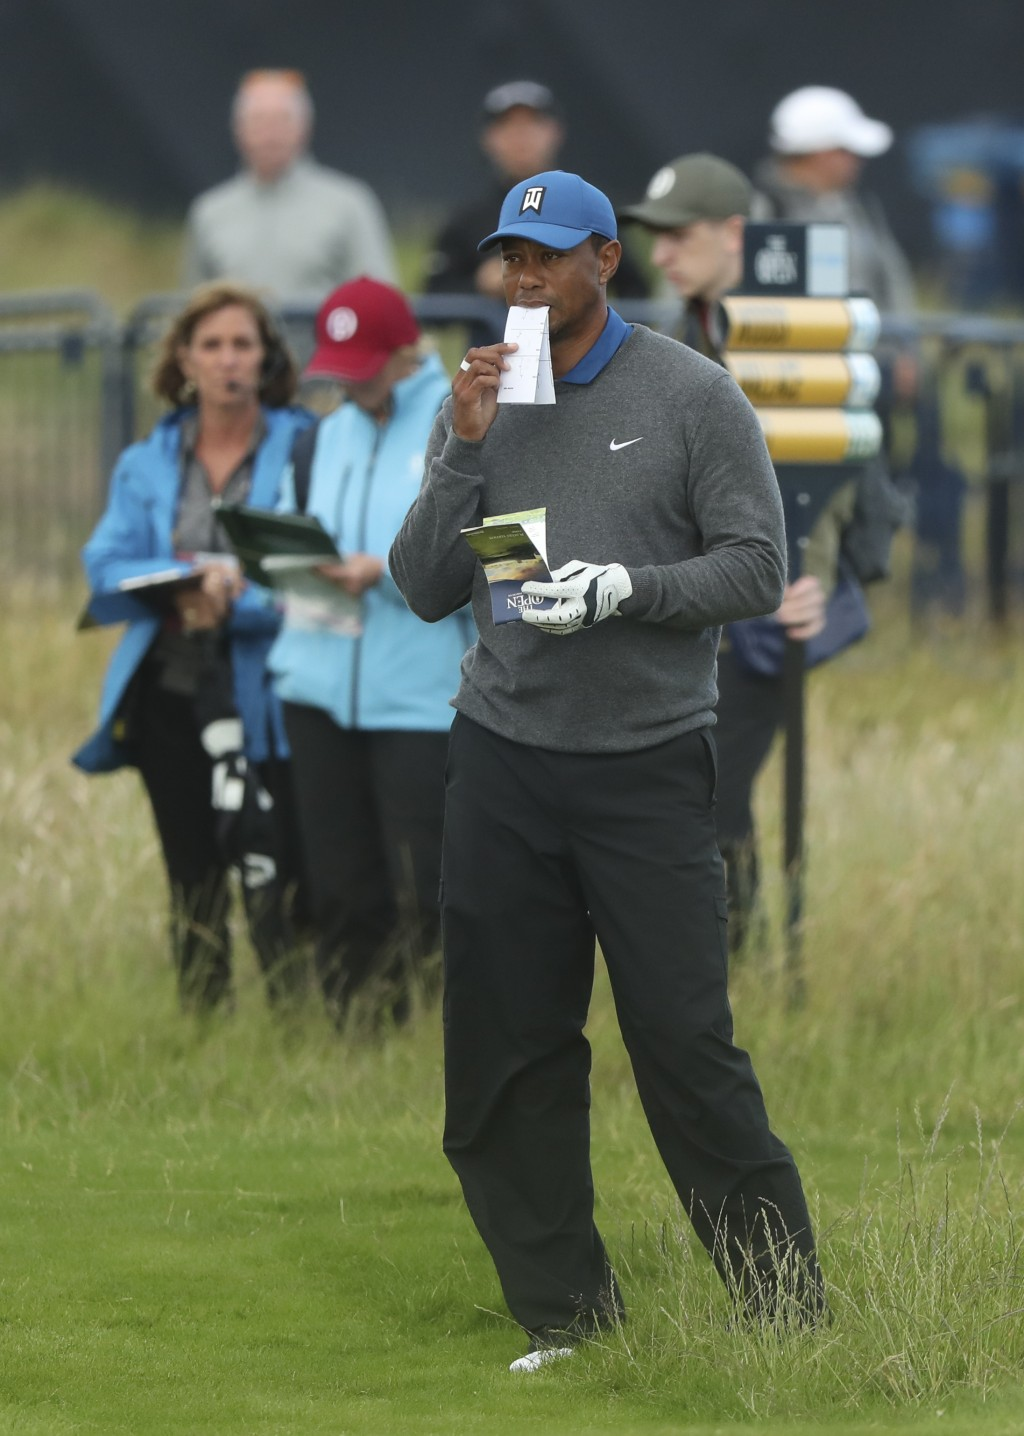 Tiger Woods of the United States looks at his playing guides on the 18th fairway during the first round of the British Open Golf Championships at Roya...